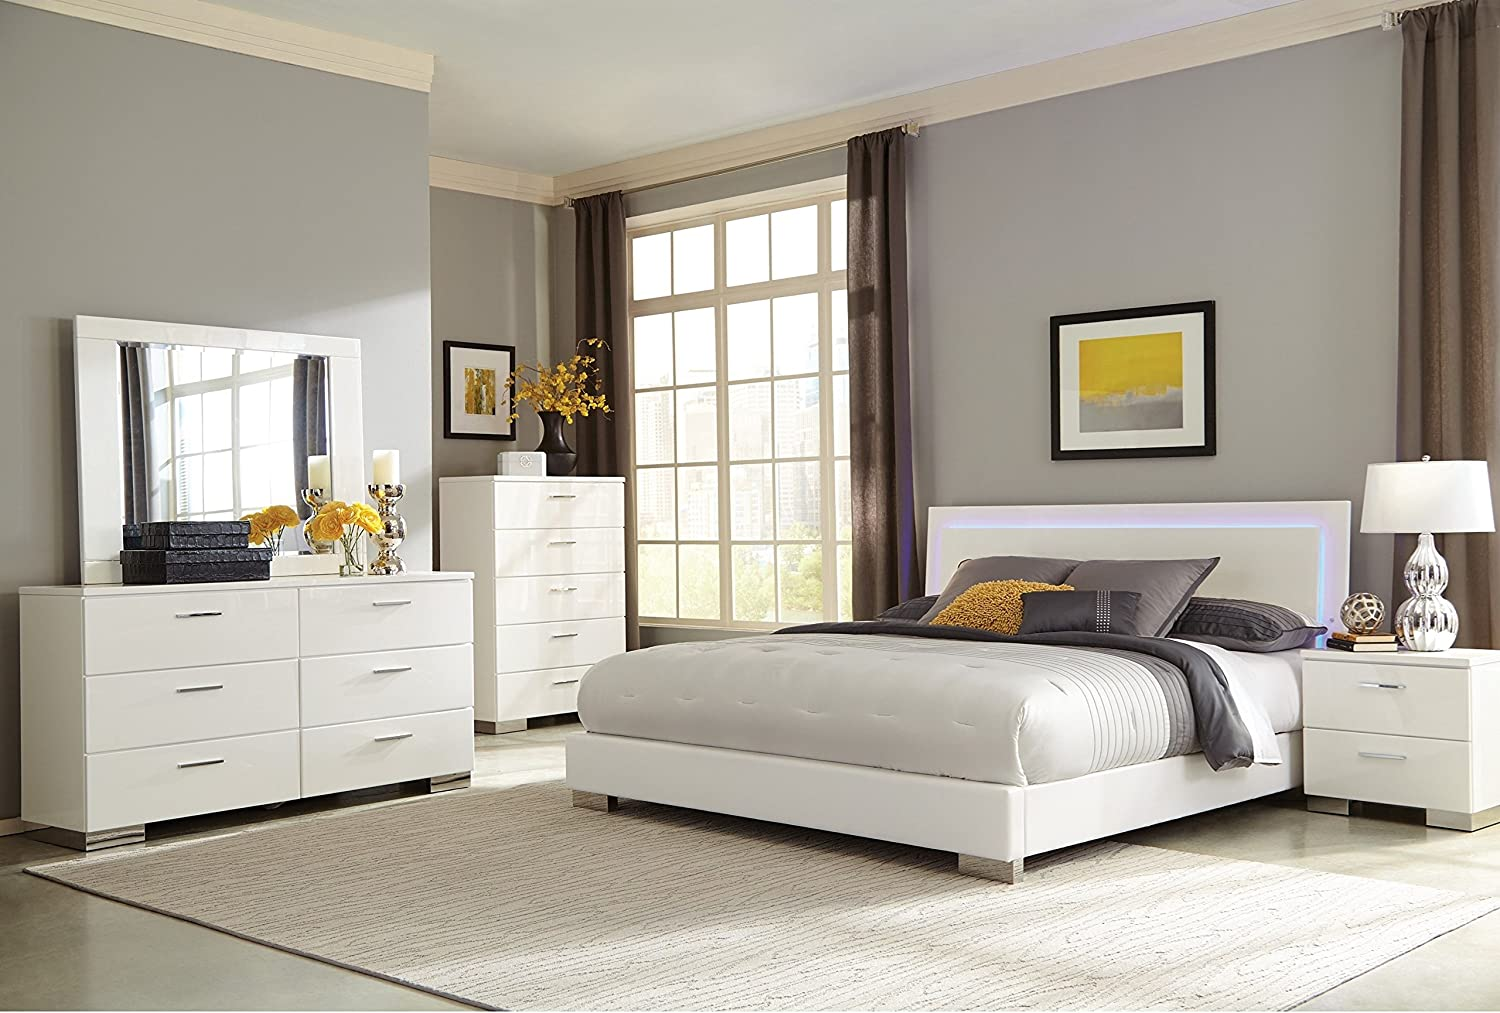 Coaster Home Furnishings Bedroom Furniture Set, Queen, Glossy White